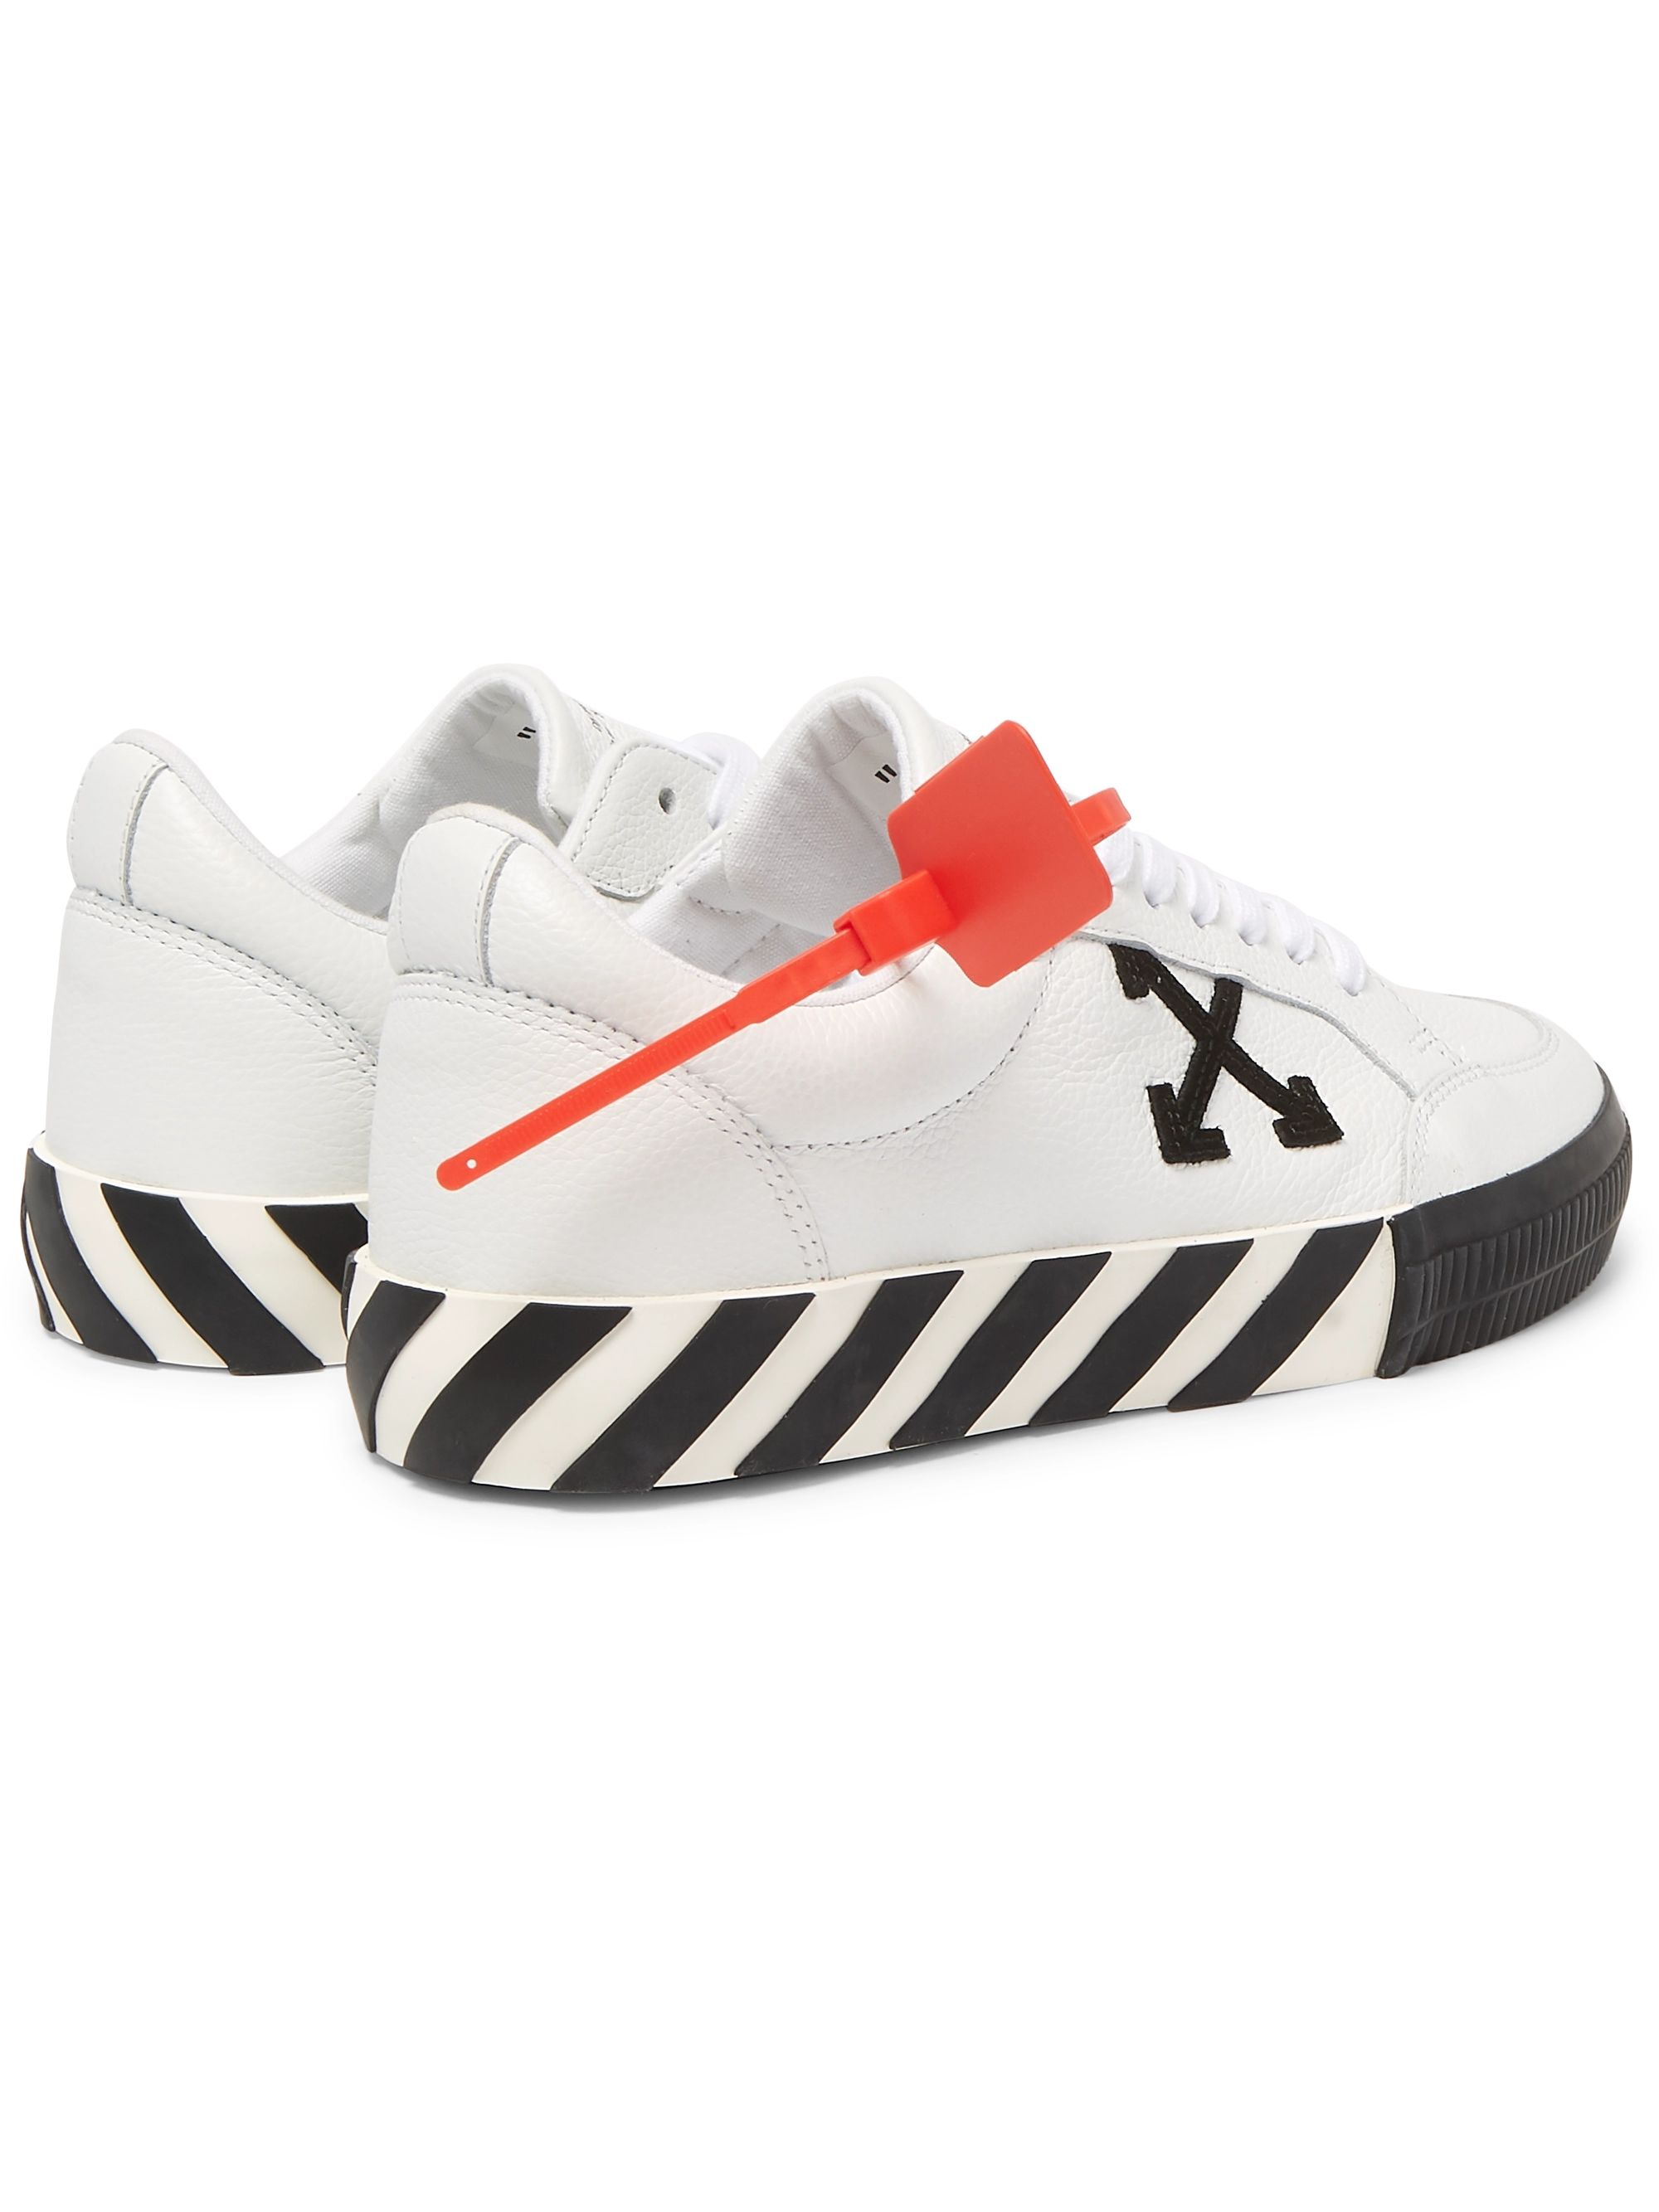 Off-White Logo-Appliquéd Full-Grain Leather Sneakers